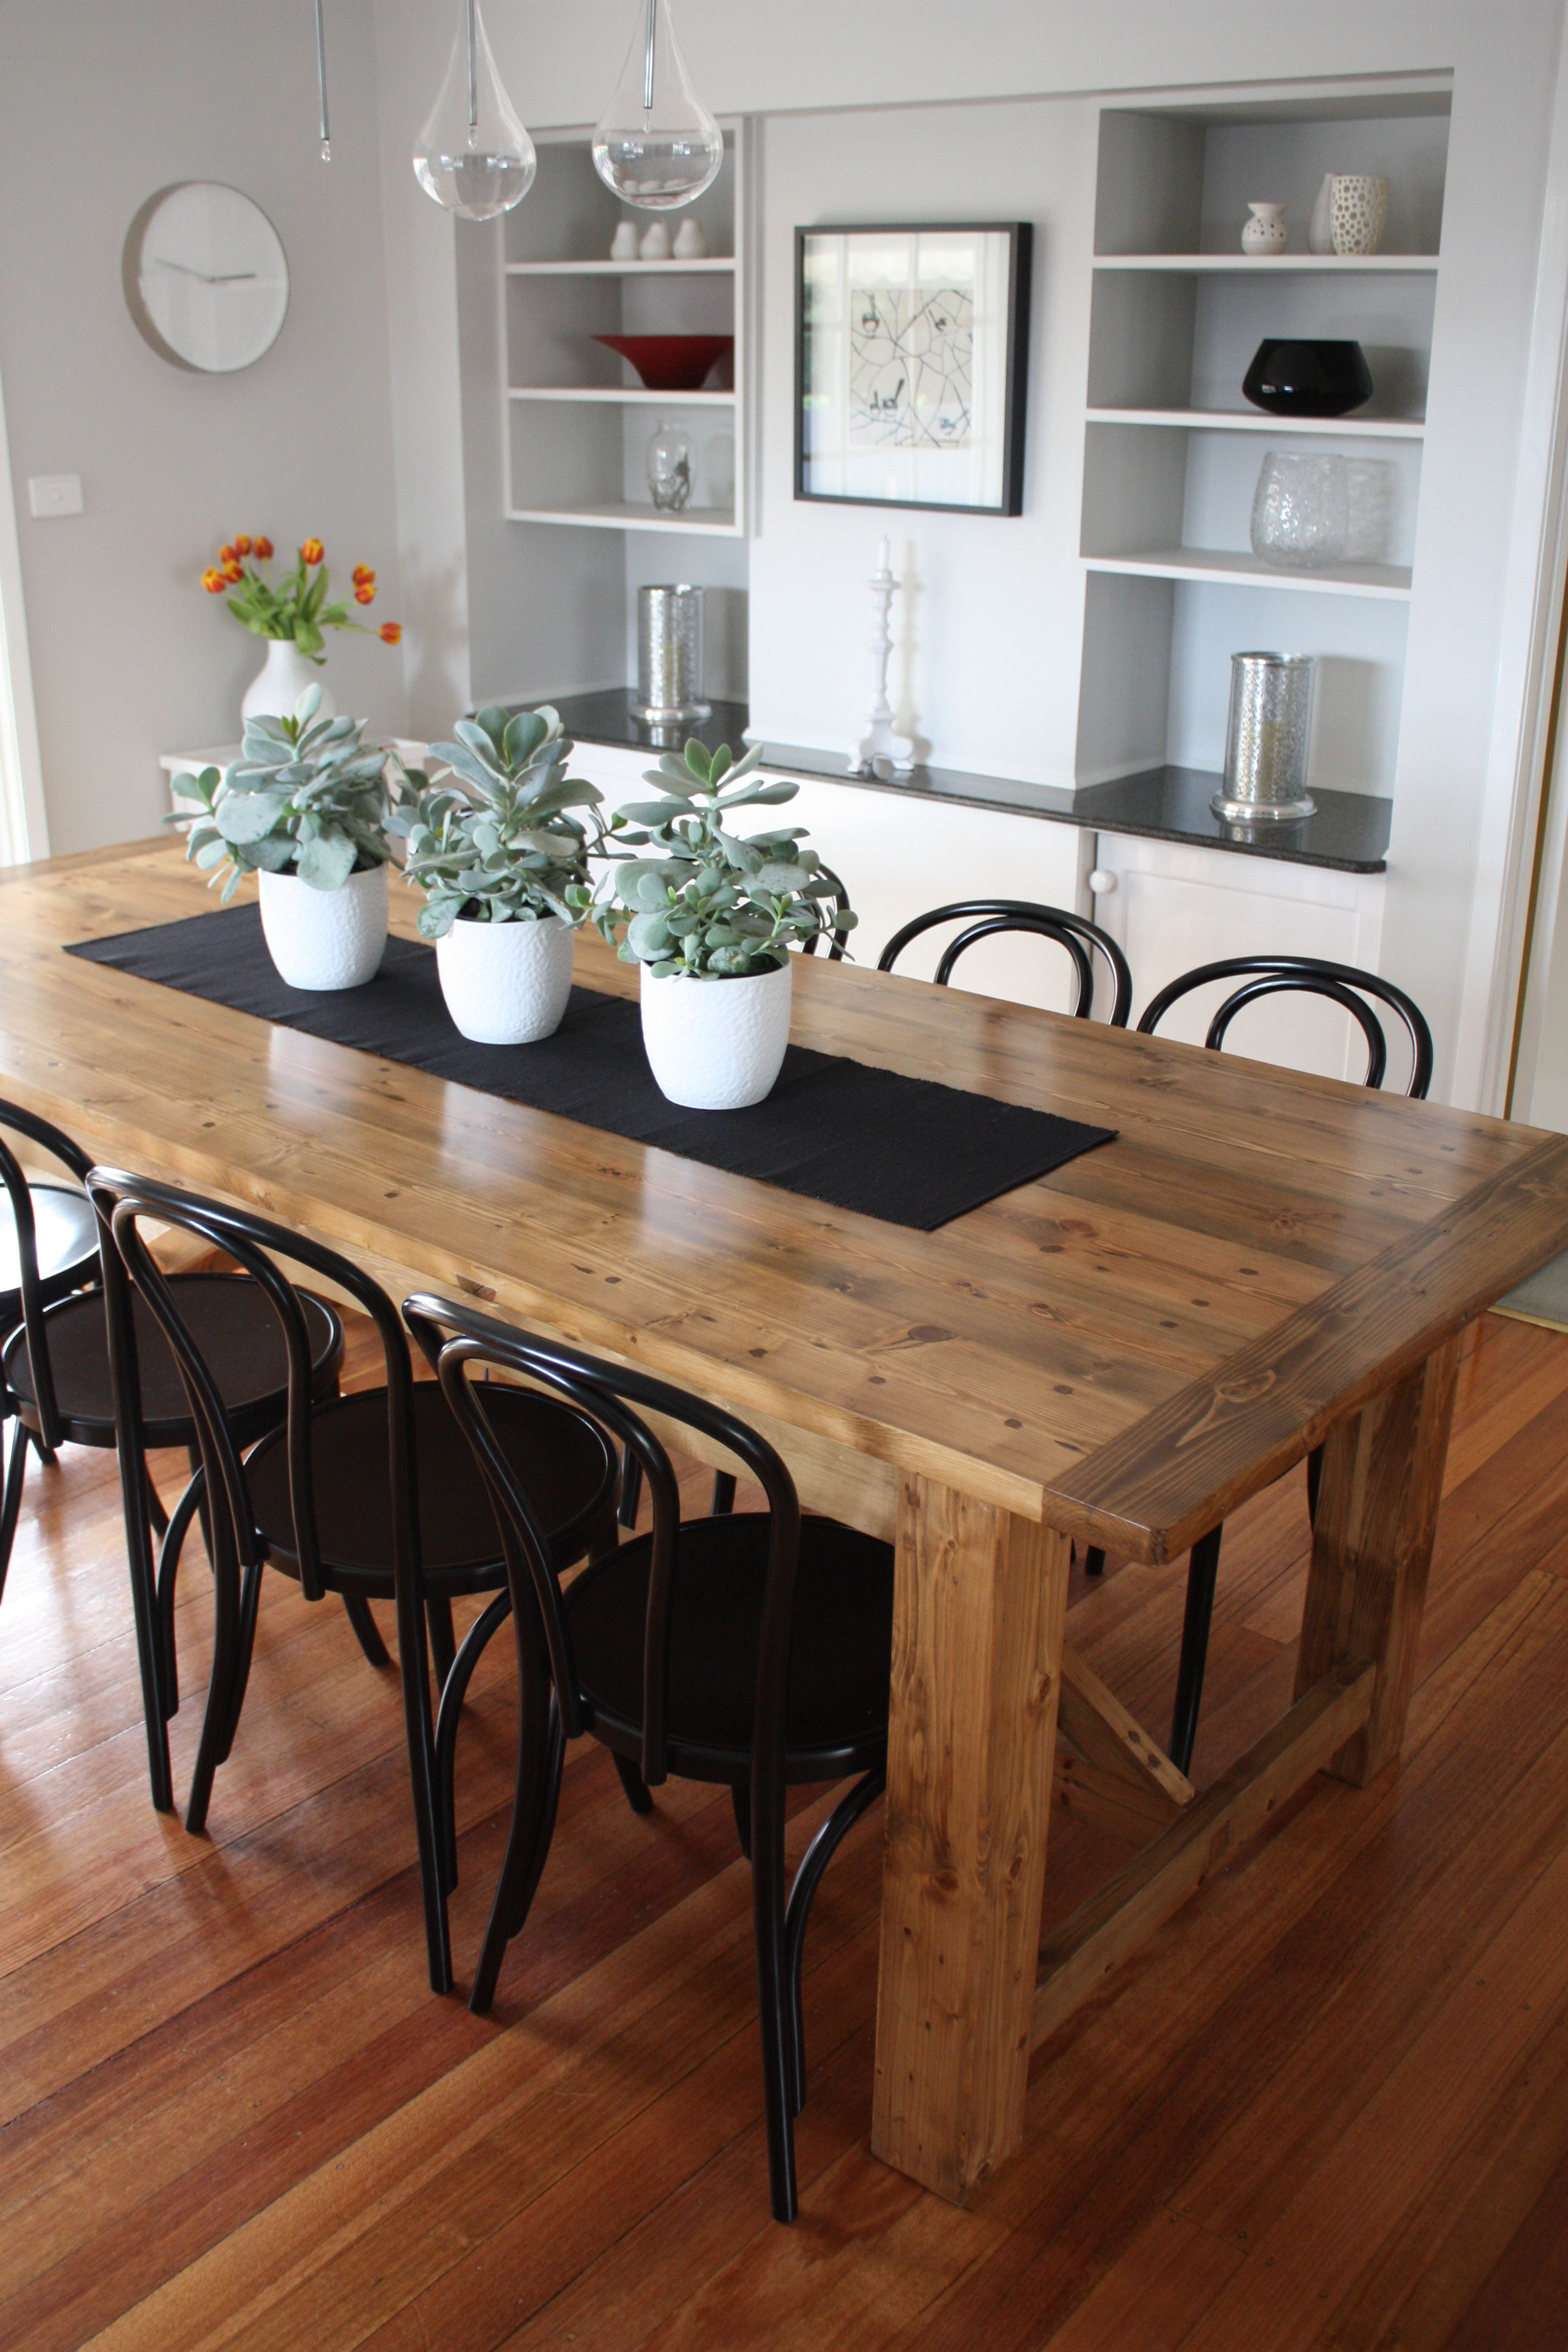 Rustic Dining Table pairs with Bentwood Chairs | house interior ...